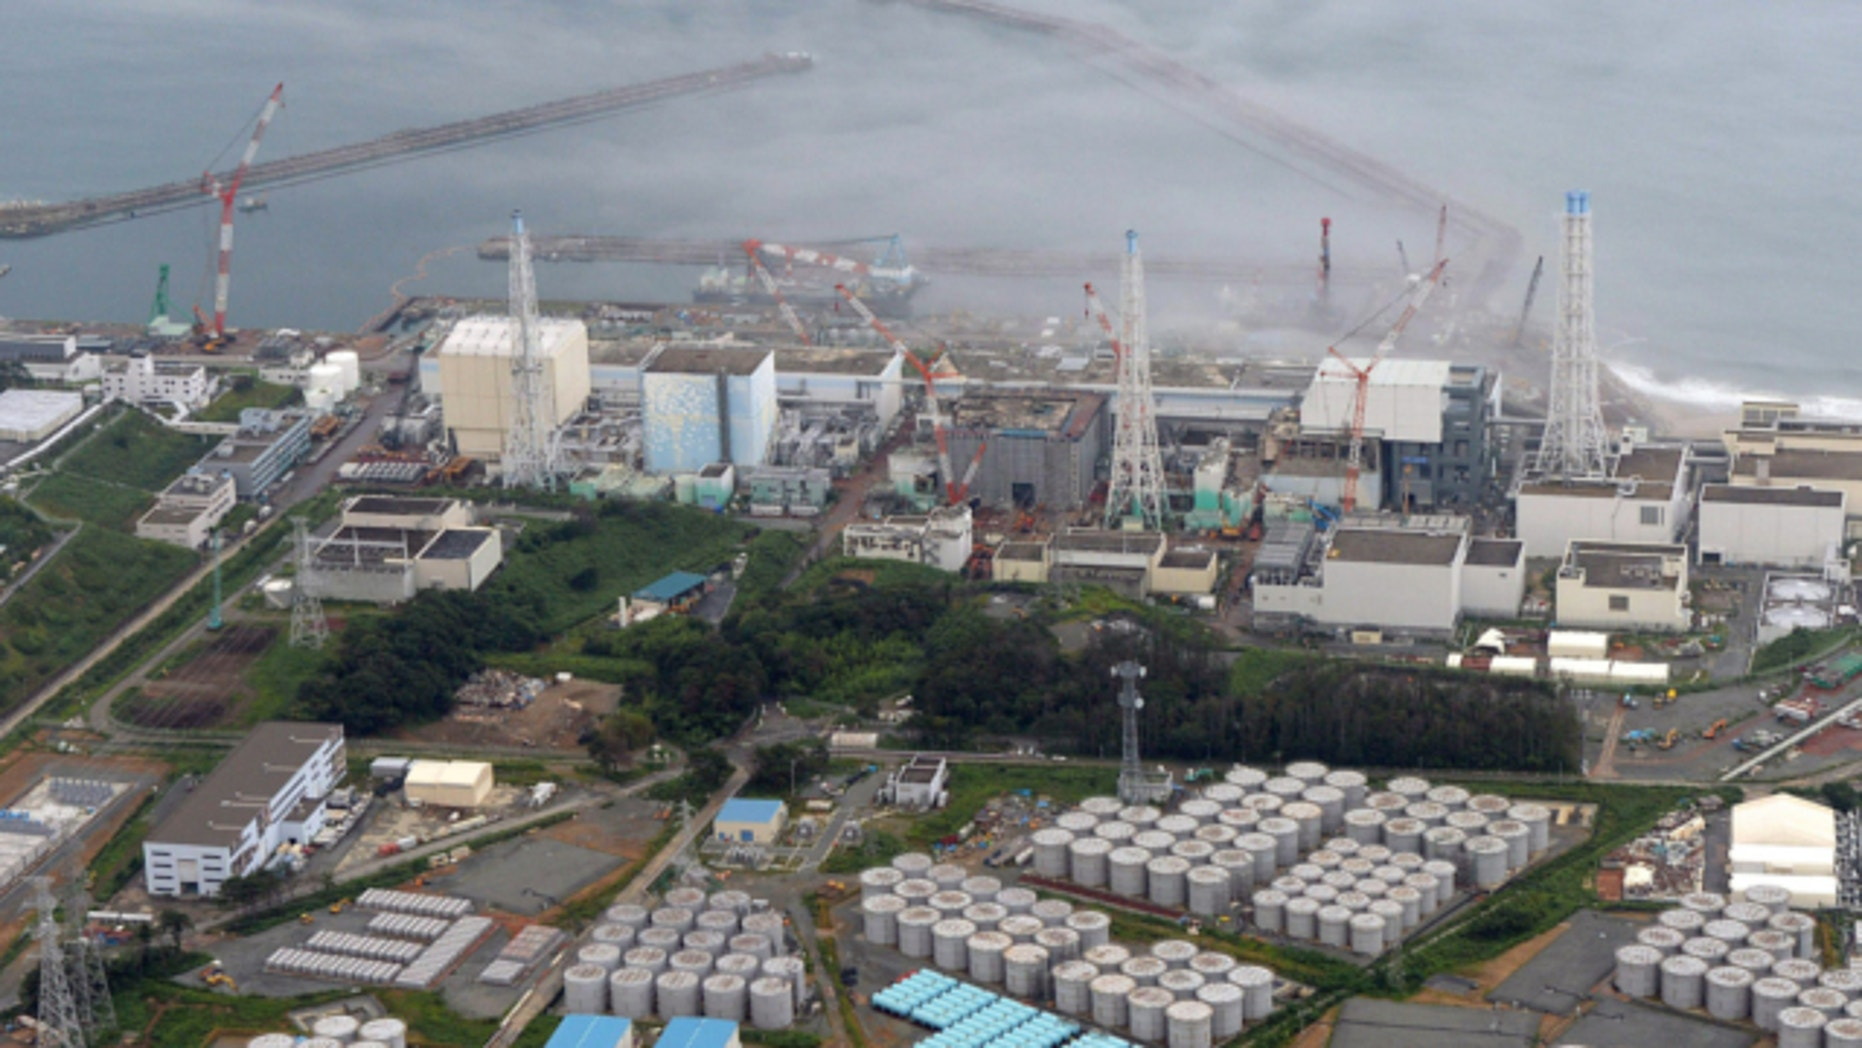 Aug. 20, 2013: This photo shows the Fukushima Dai-ichi nuclear plant at Okuma in Fukushima prefecture, northern Japan.